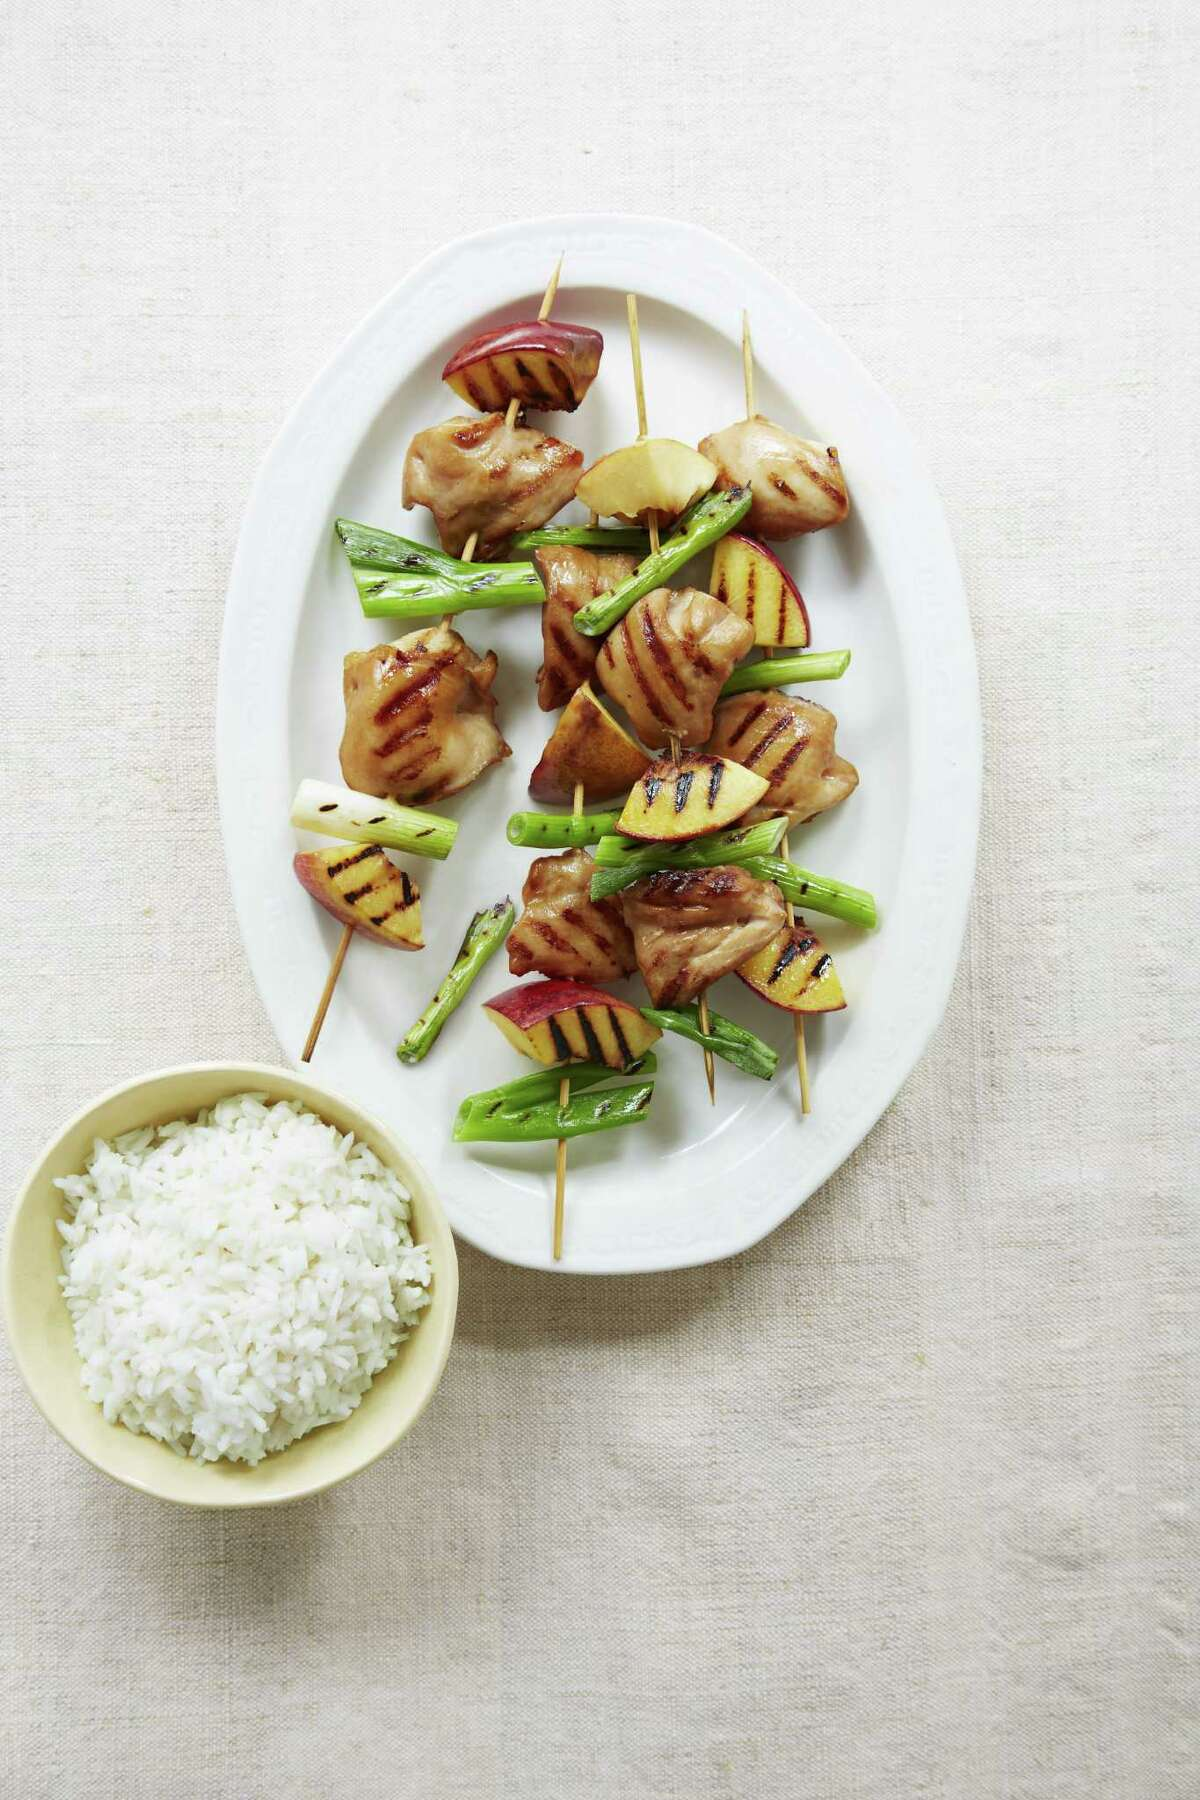 Good Housekeeping recipe for Quick Chicken Kabobs.